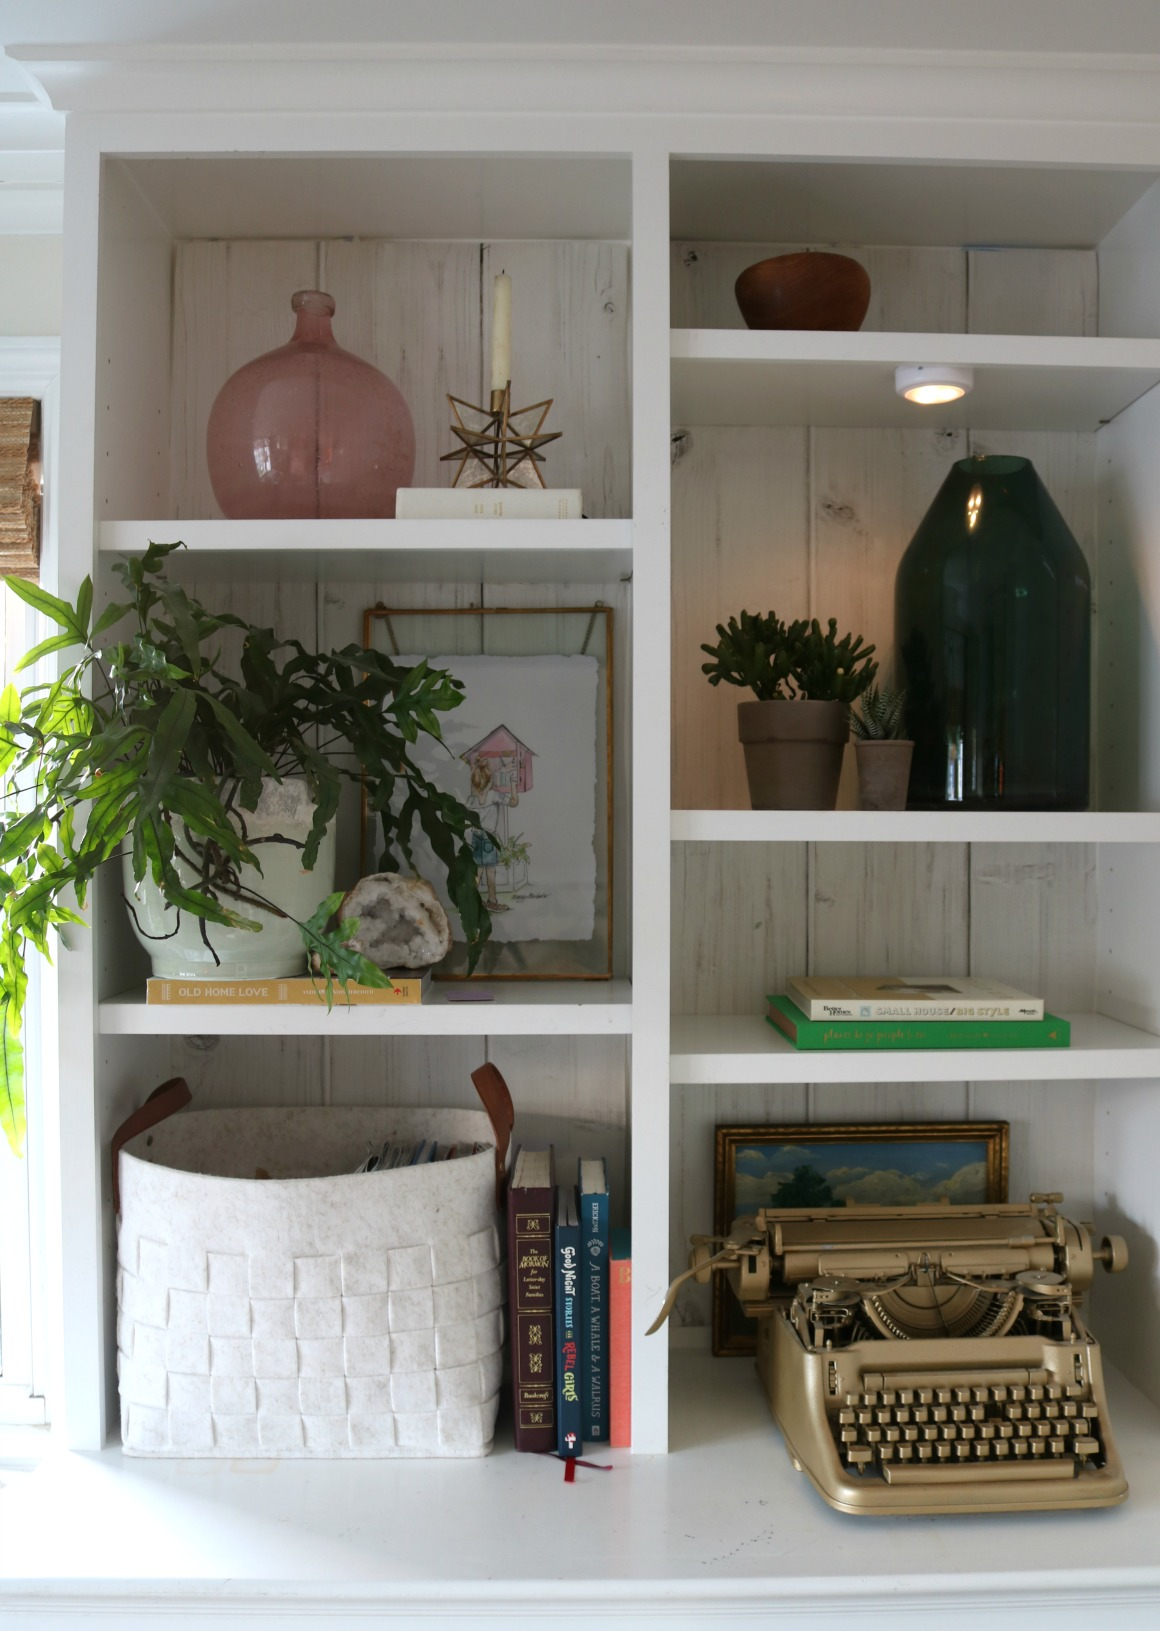 Easiest Houseplants to keep alive- Why I LOVE houseplants